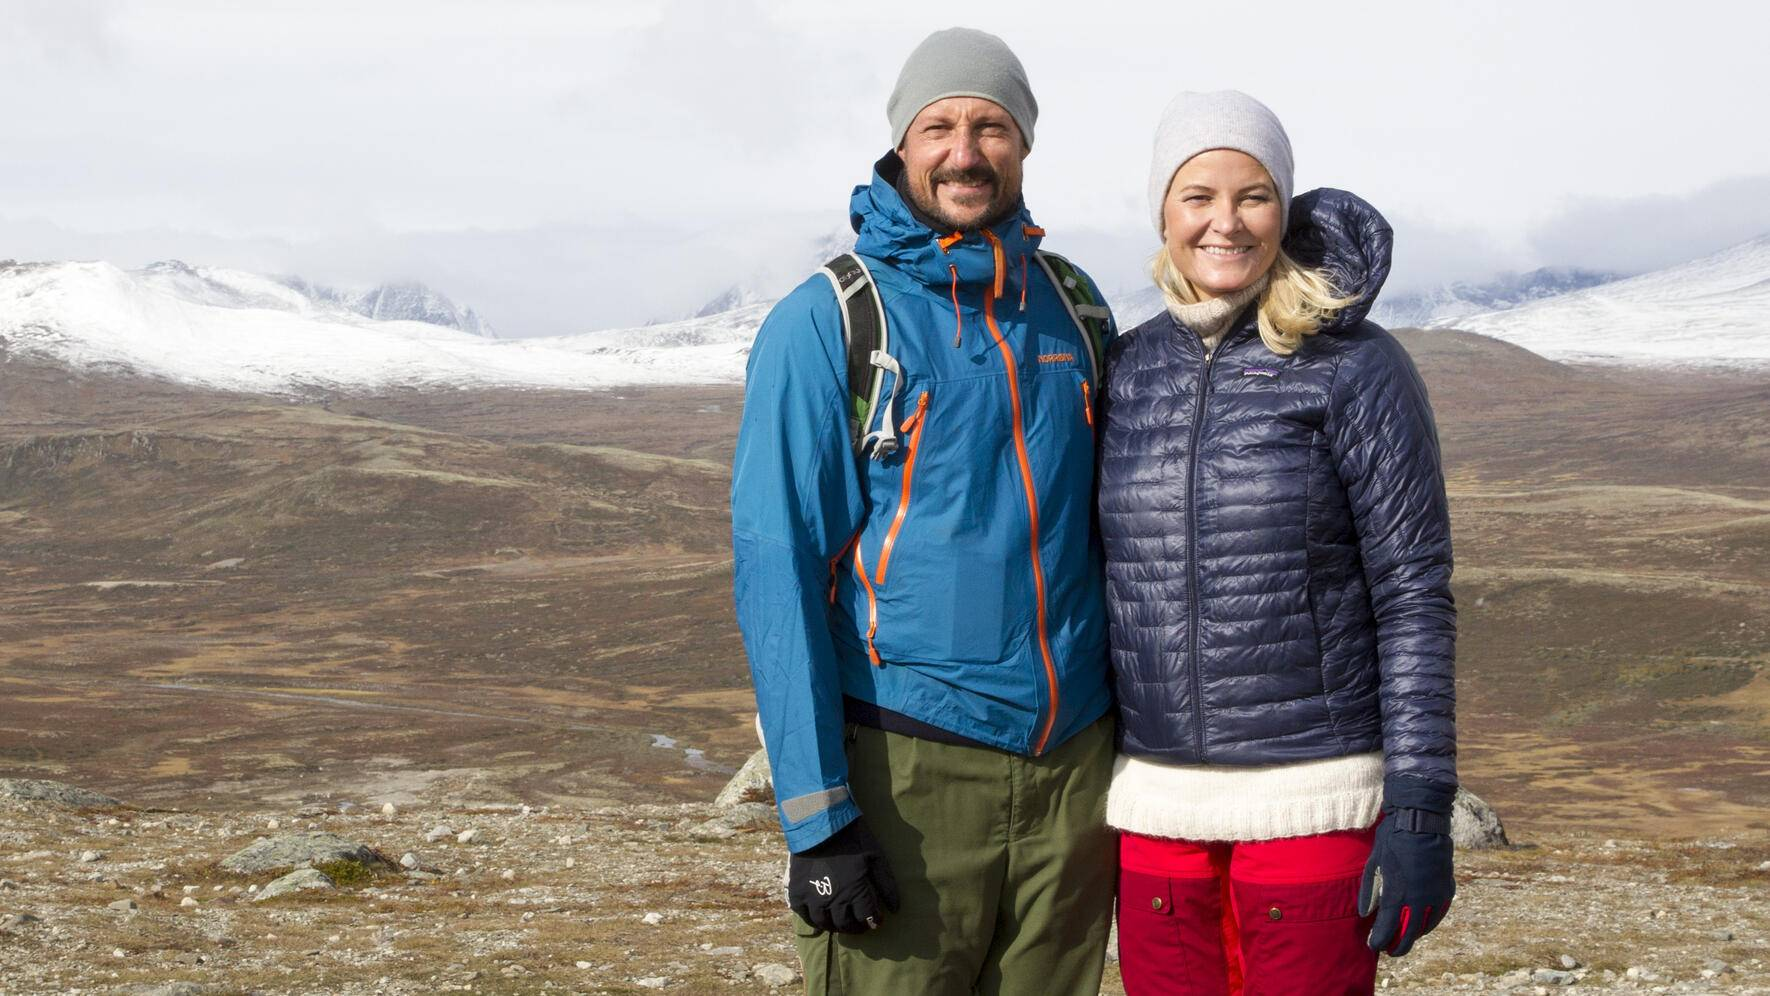 Hjerkinn, 19.09.2019.Crown Prince Haakon and Crown Princess Mette-Marit started their three day Oppland County trip by visit Viewpoint Snøhetta which is in Hjerkinn. The pavilion is a boxed-steel construction, with a large glass surface facing Snøhetta to the north, and an organic, undulating wooden shape to the south....Viewpoint Snøhetta.Mandatory Credit  © Aasta Børte 2019.Distributed by nunn-syndication.com